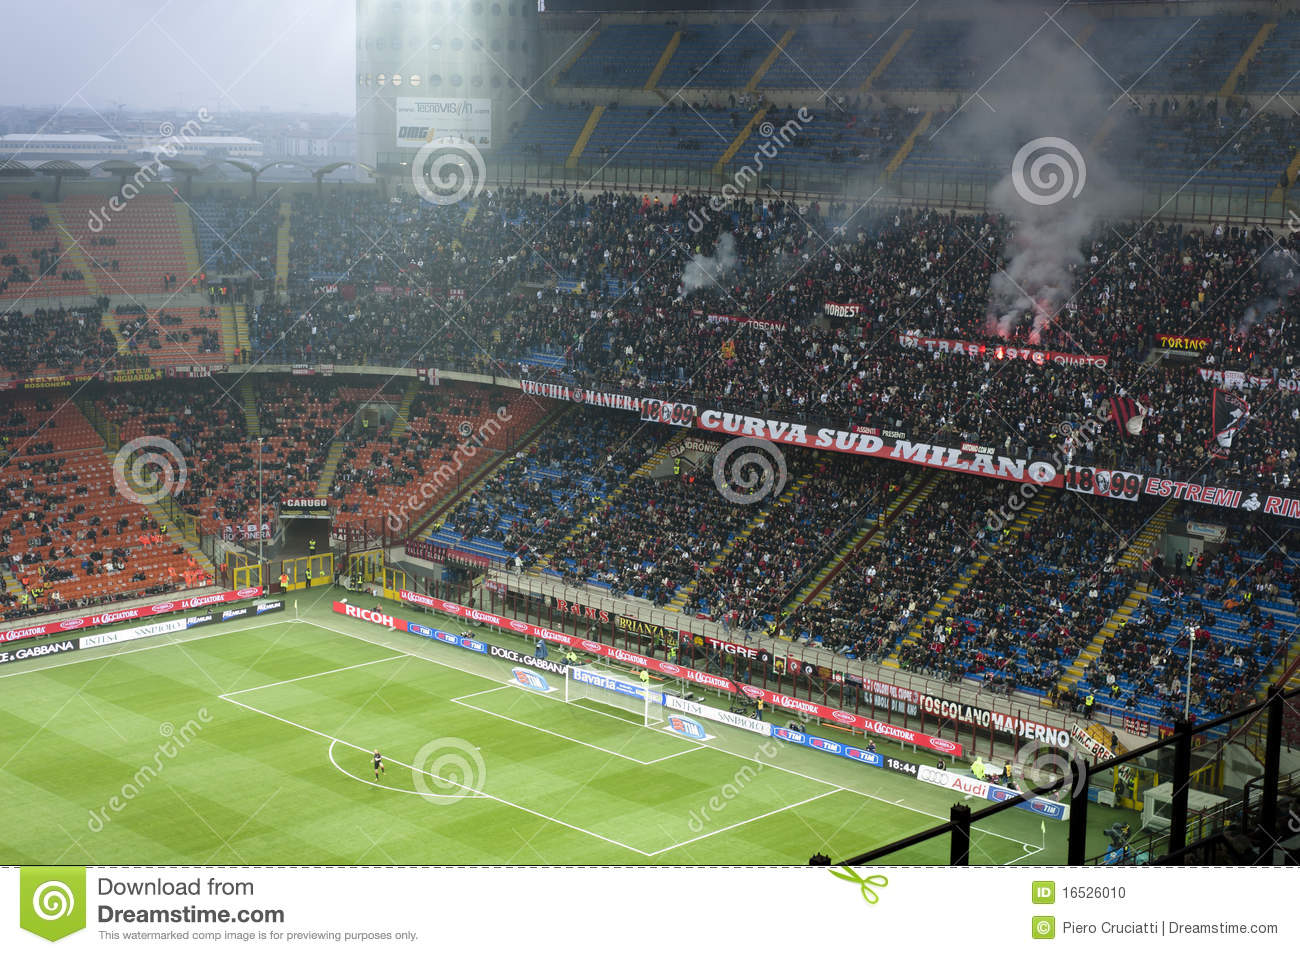 game masters ac milan - photo#16